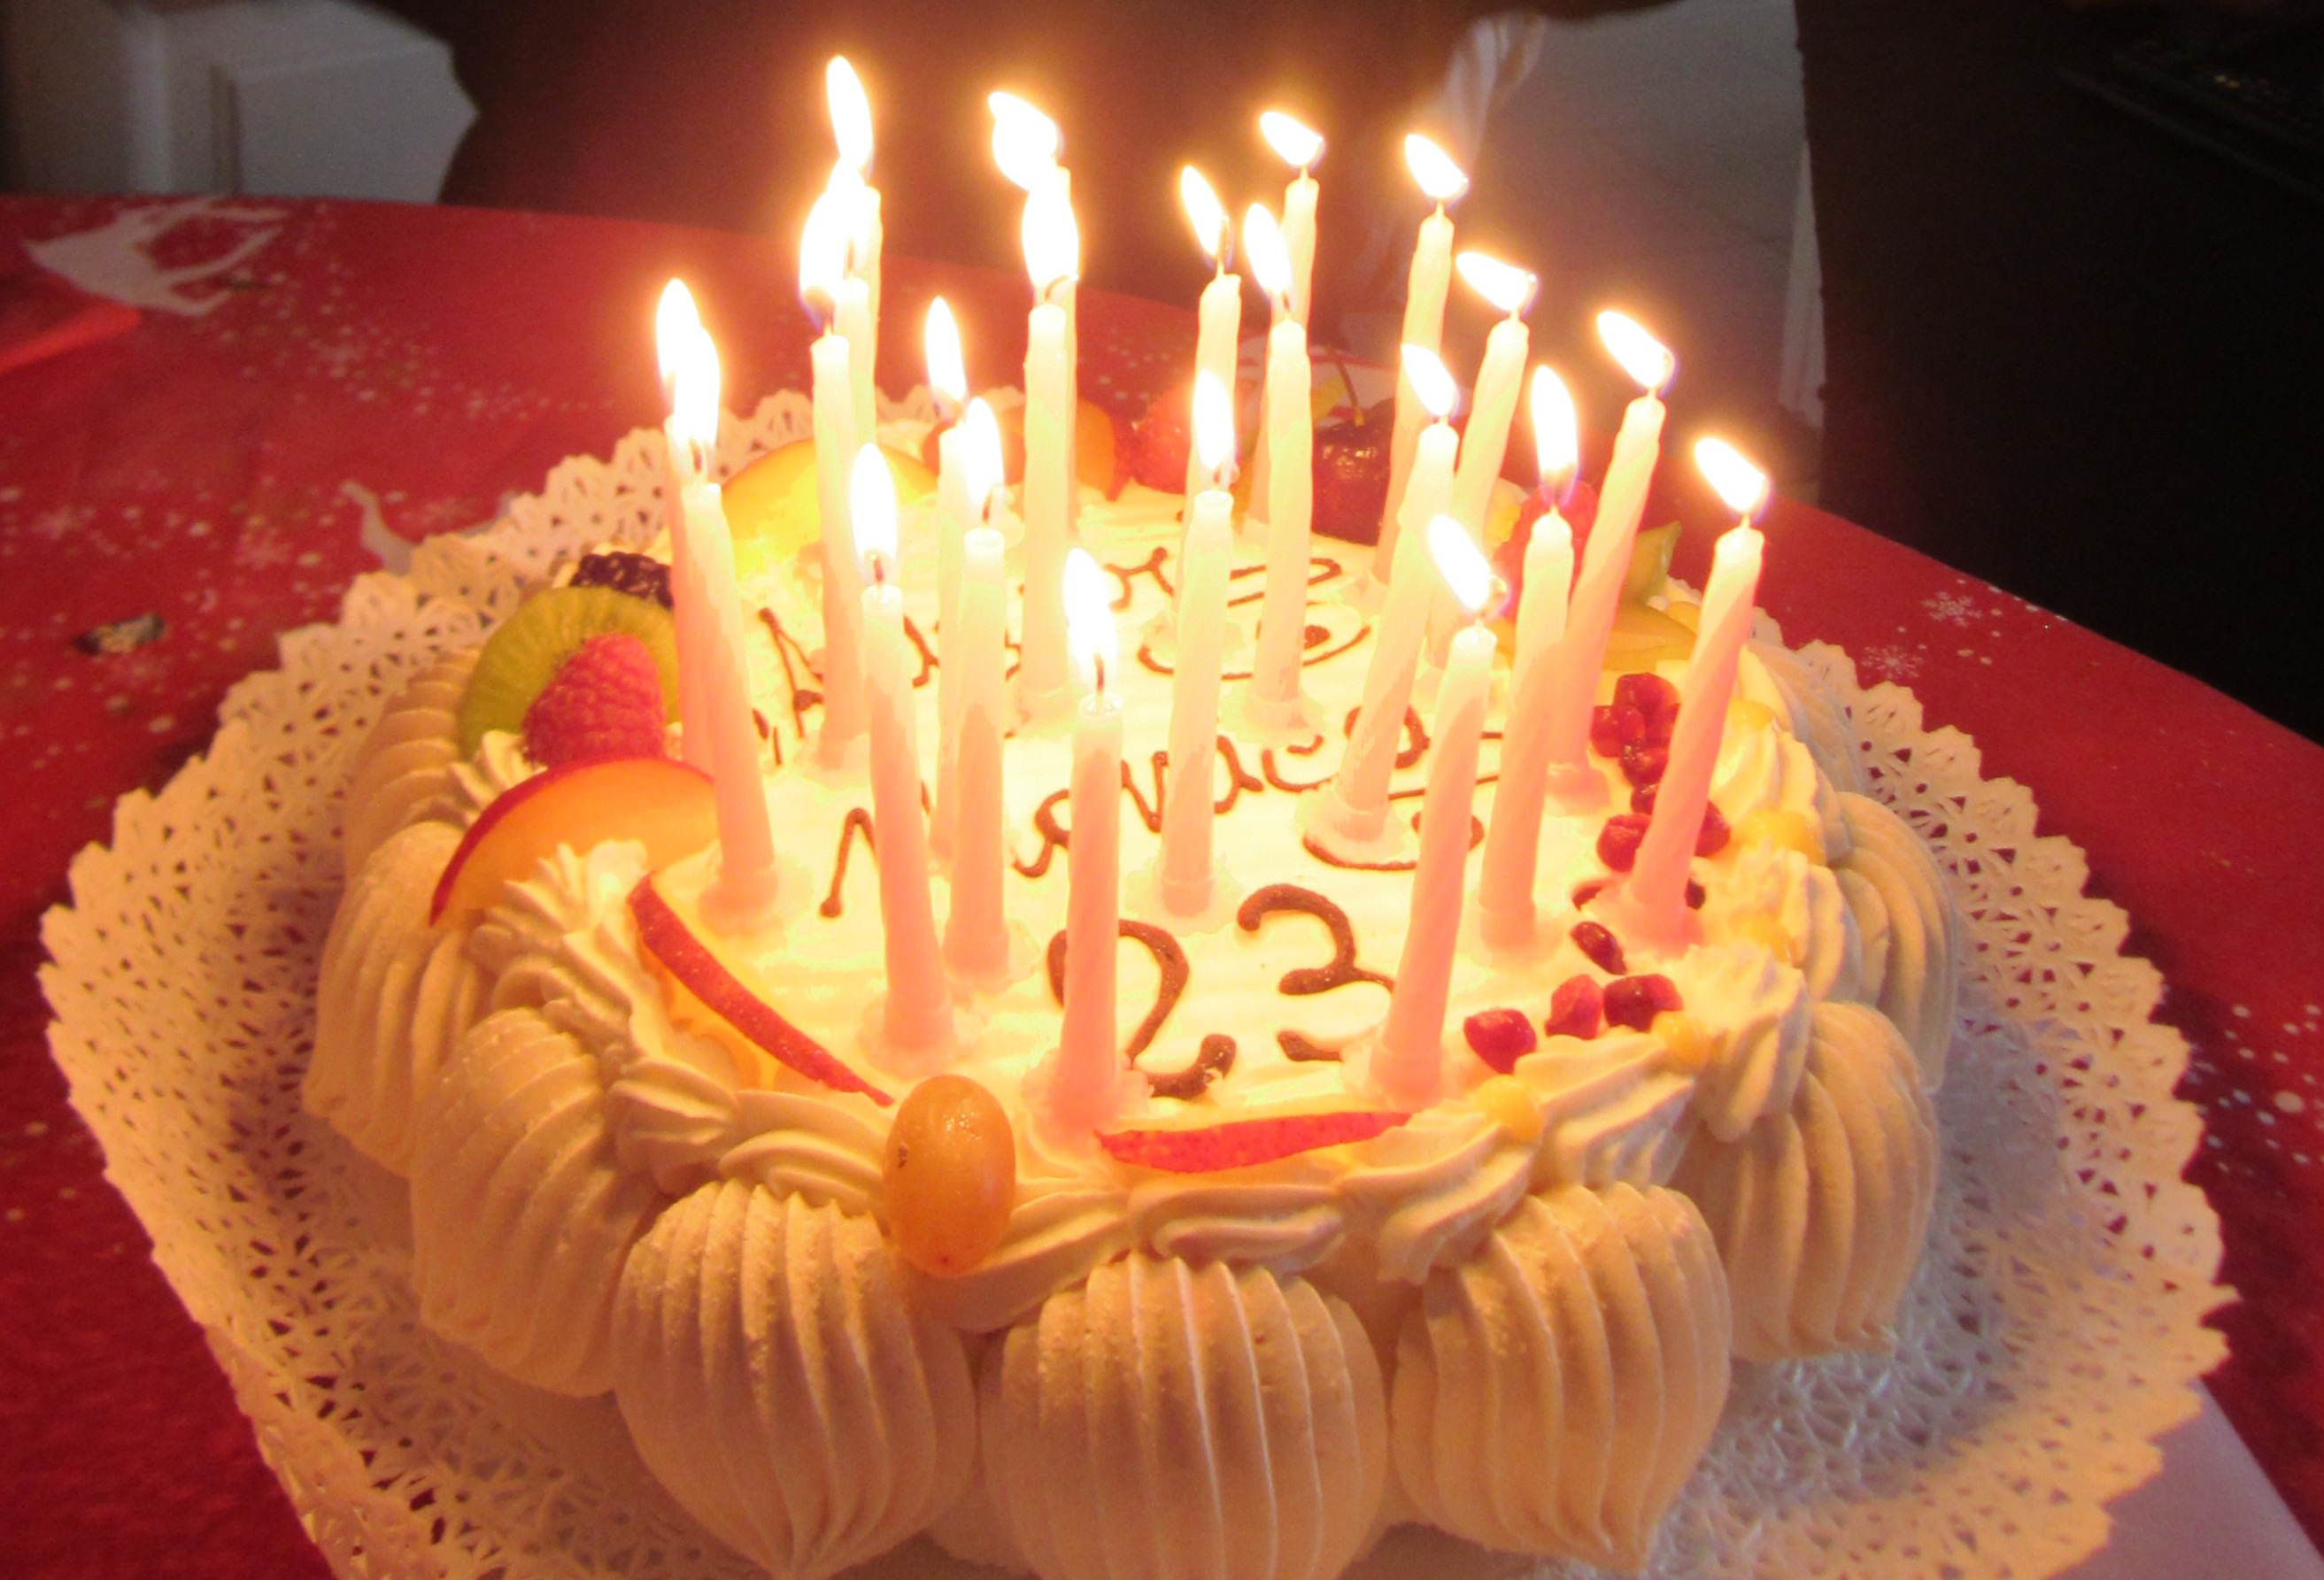 Birthday Cakes With Candles Fileitaly Birthday Cake With Candles 5 Wikimedia Commons